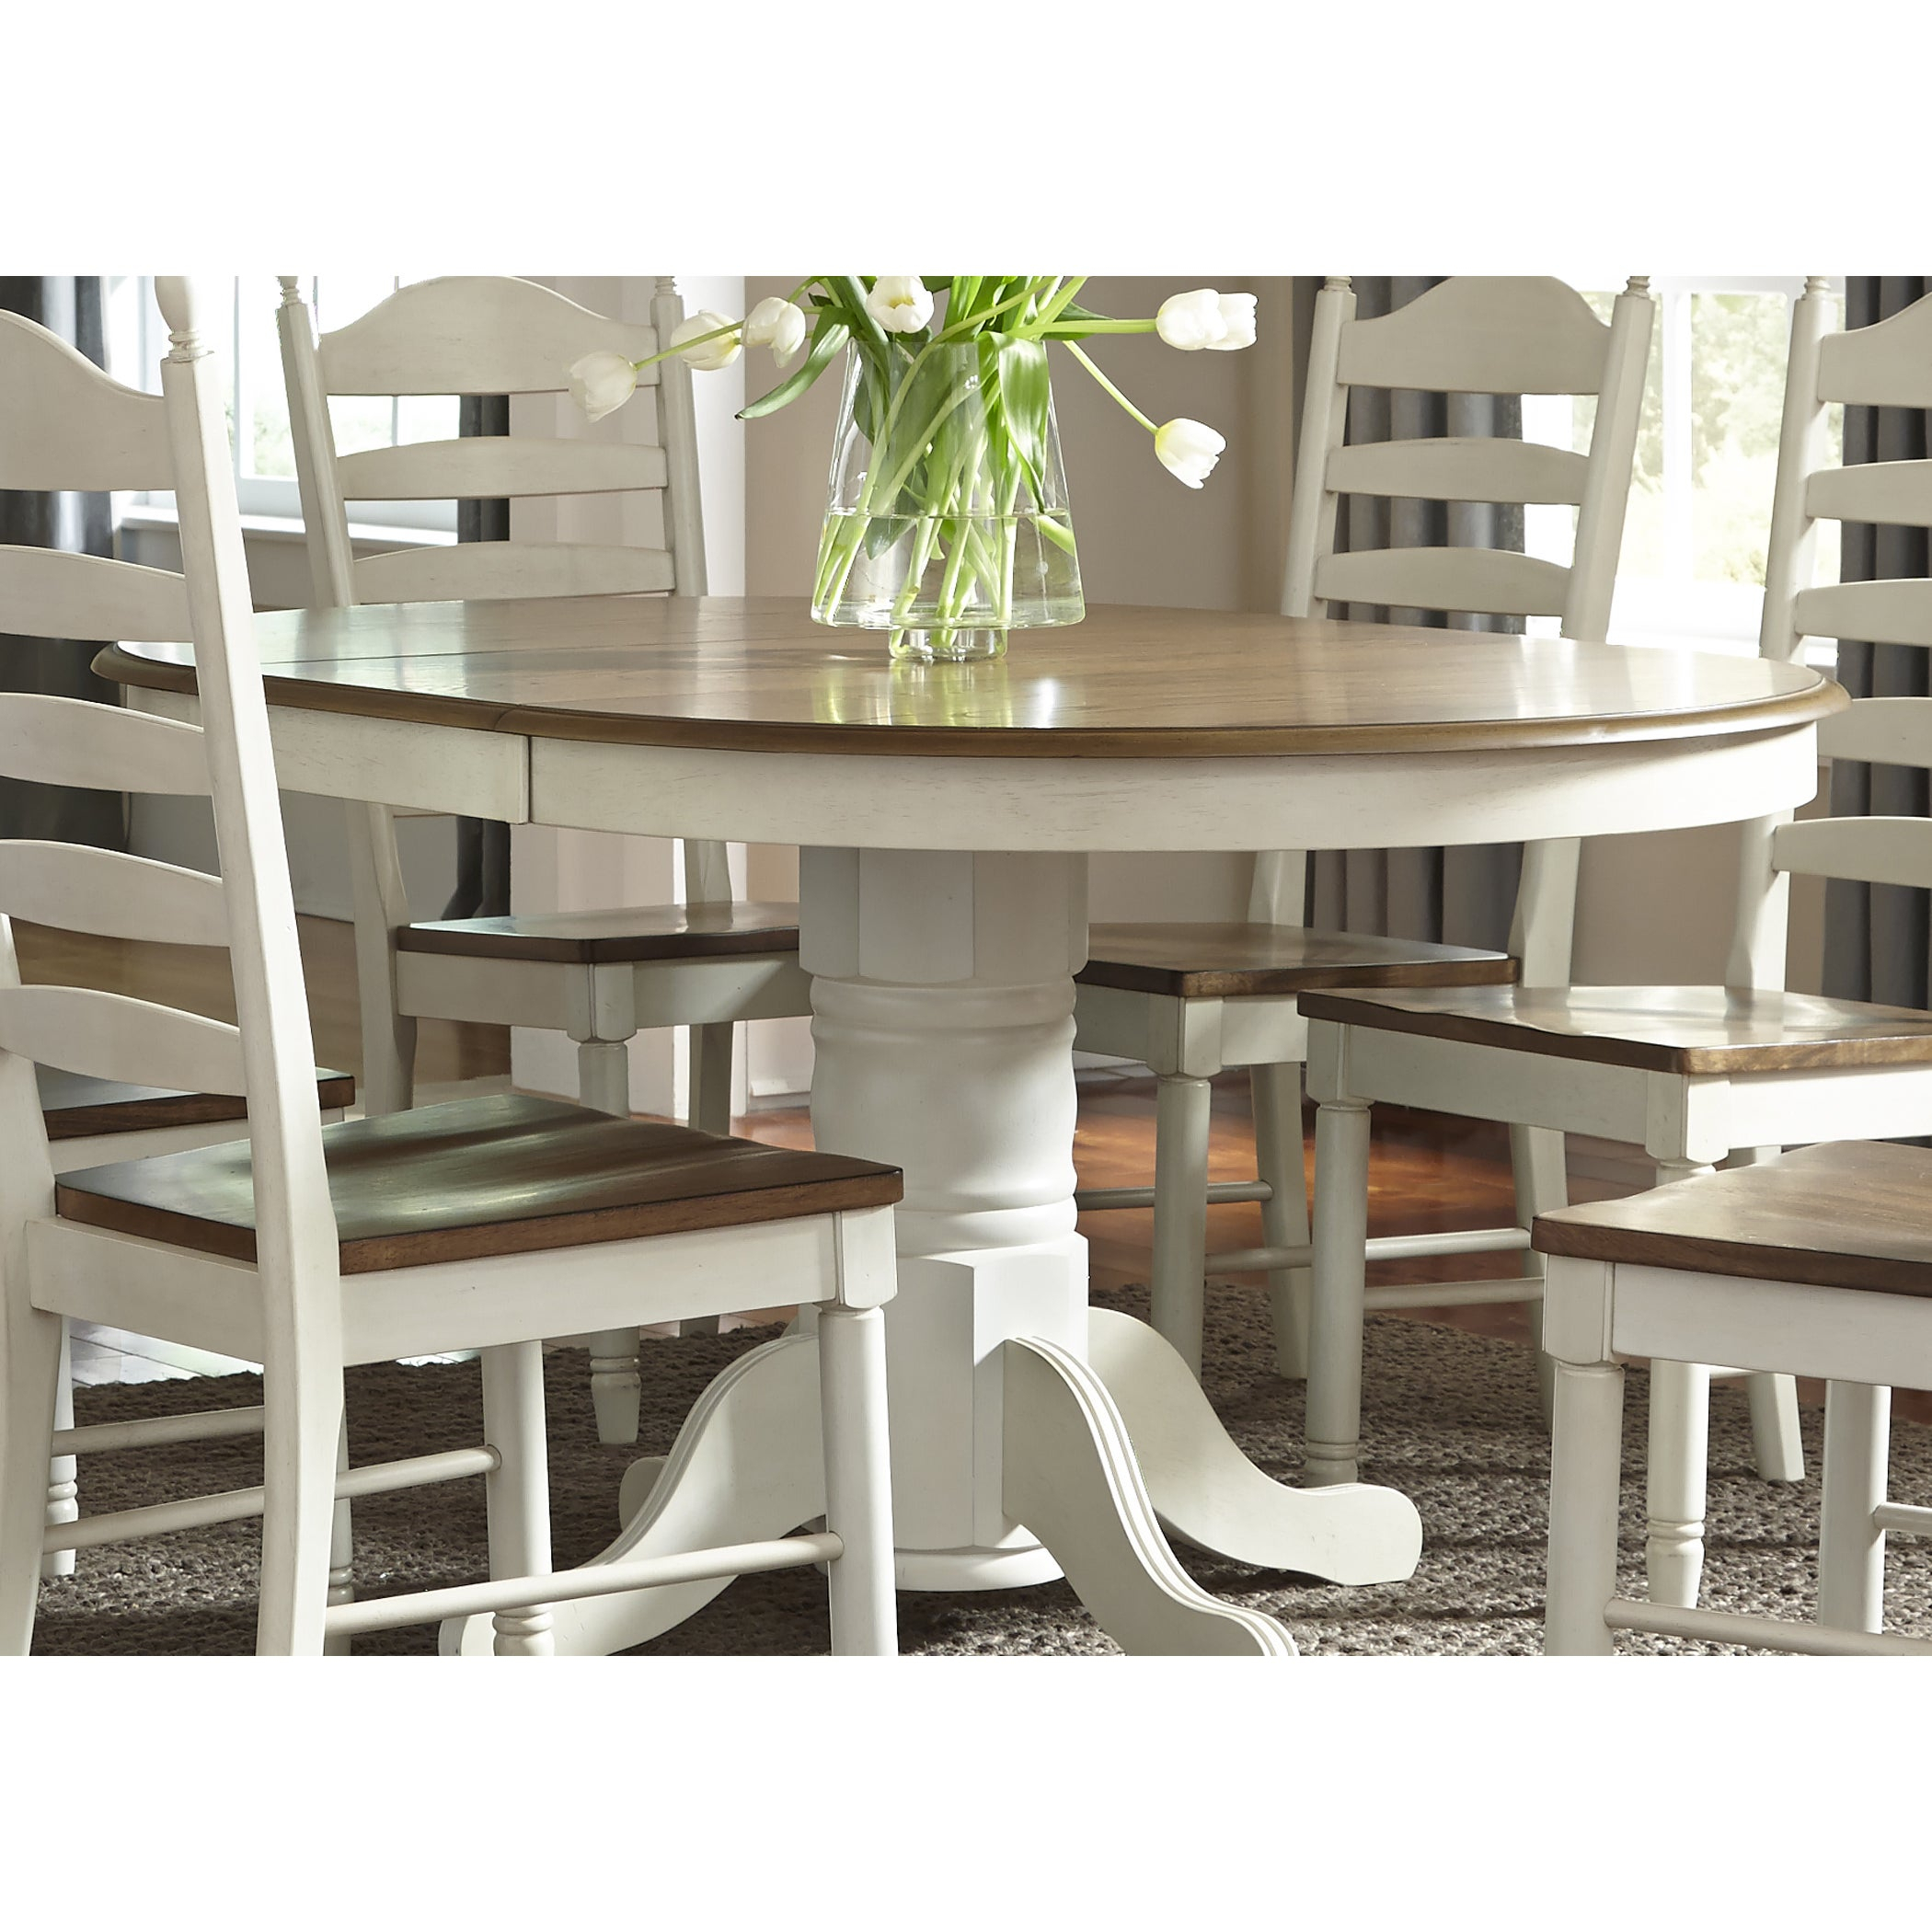 Buy Oval Kitchen & Dining Room Tables Online At Overstock | Our Best For Recent Cincinnati 3 Piece Dining Sets (View 7 of 20)